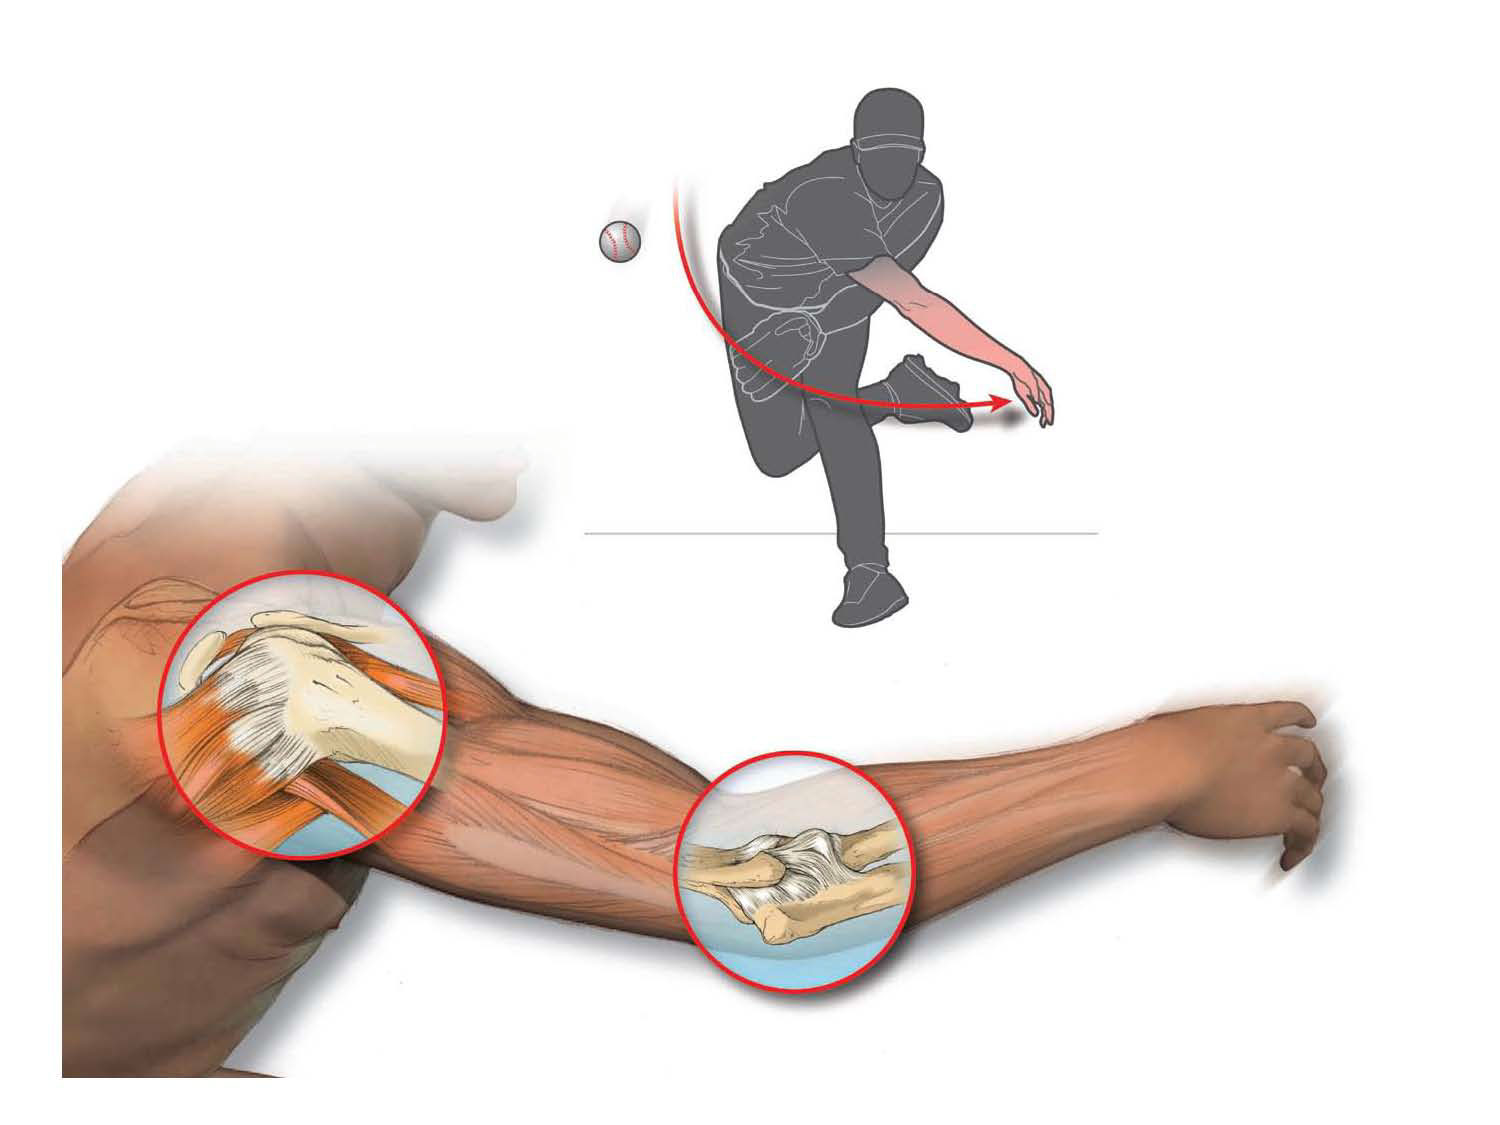 illustration-Medical_Shoulder and elbow motion for throwing a ball-Matt Zang